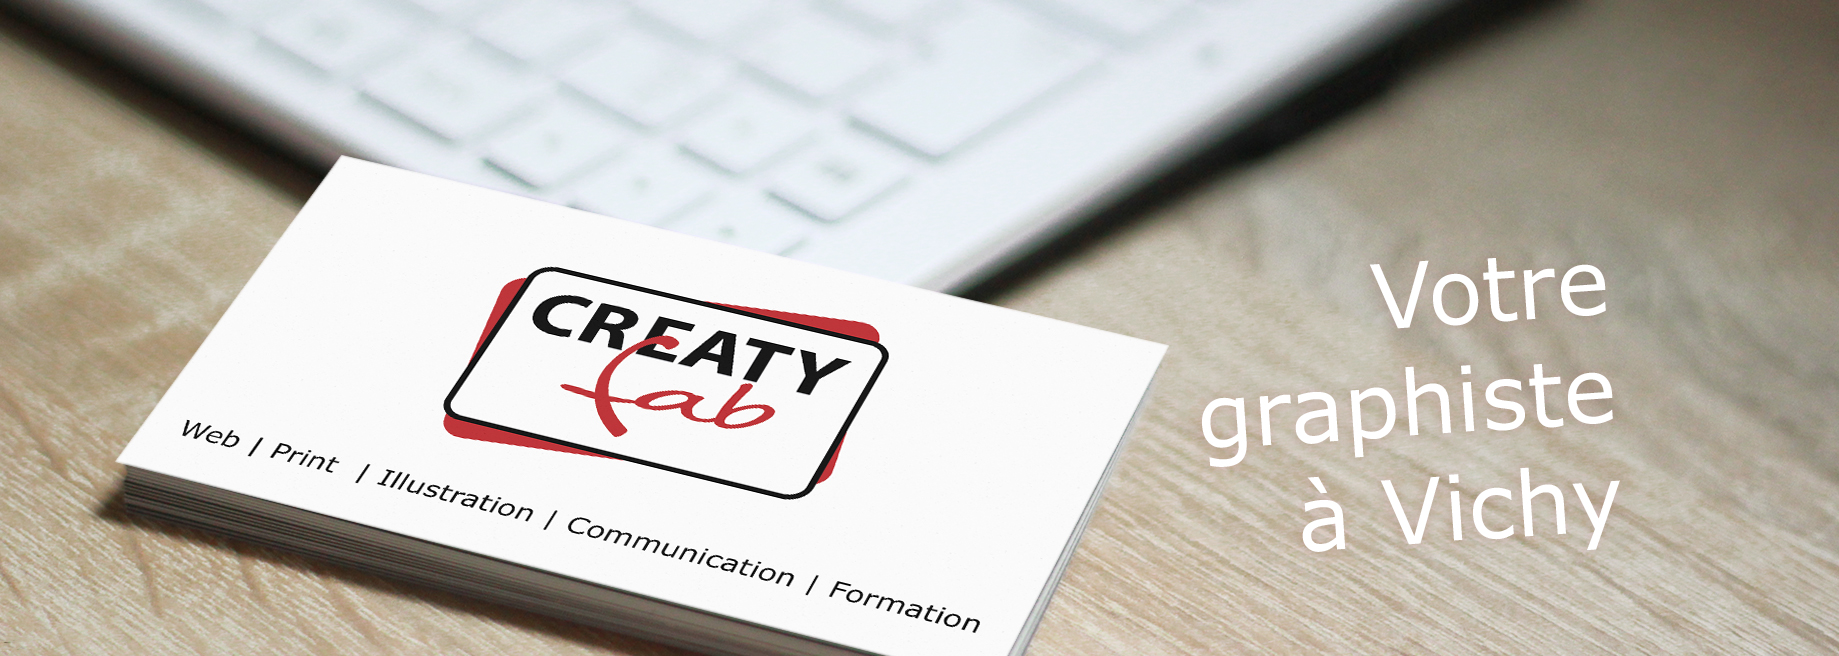 CREATYfab Graphiste à Vichy : web, print, communication, illustration, formation